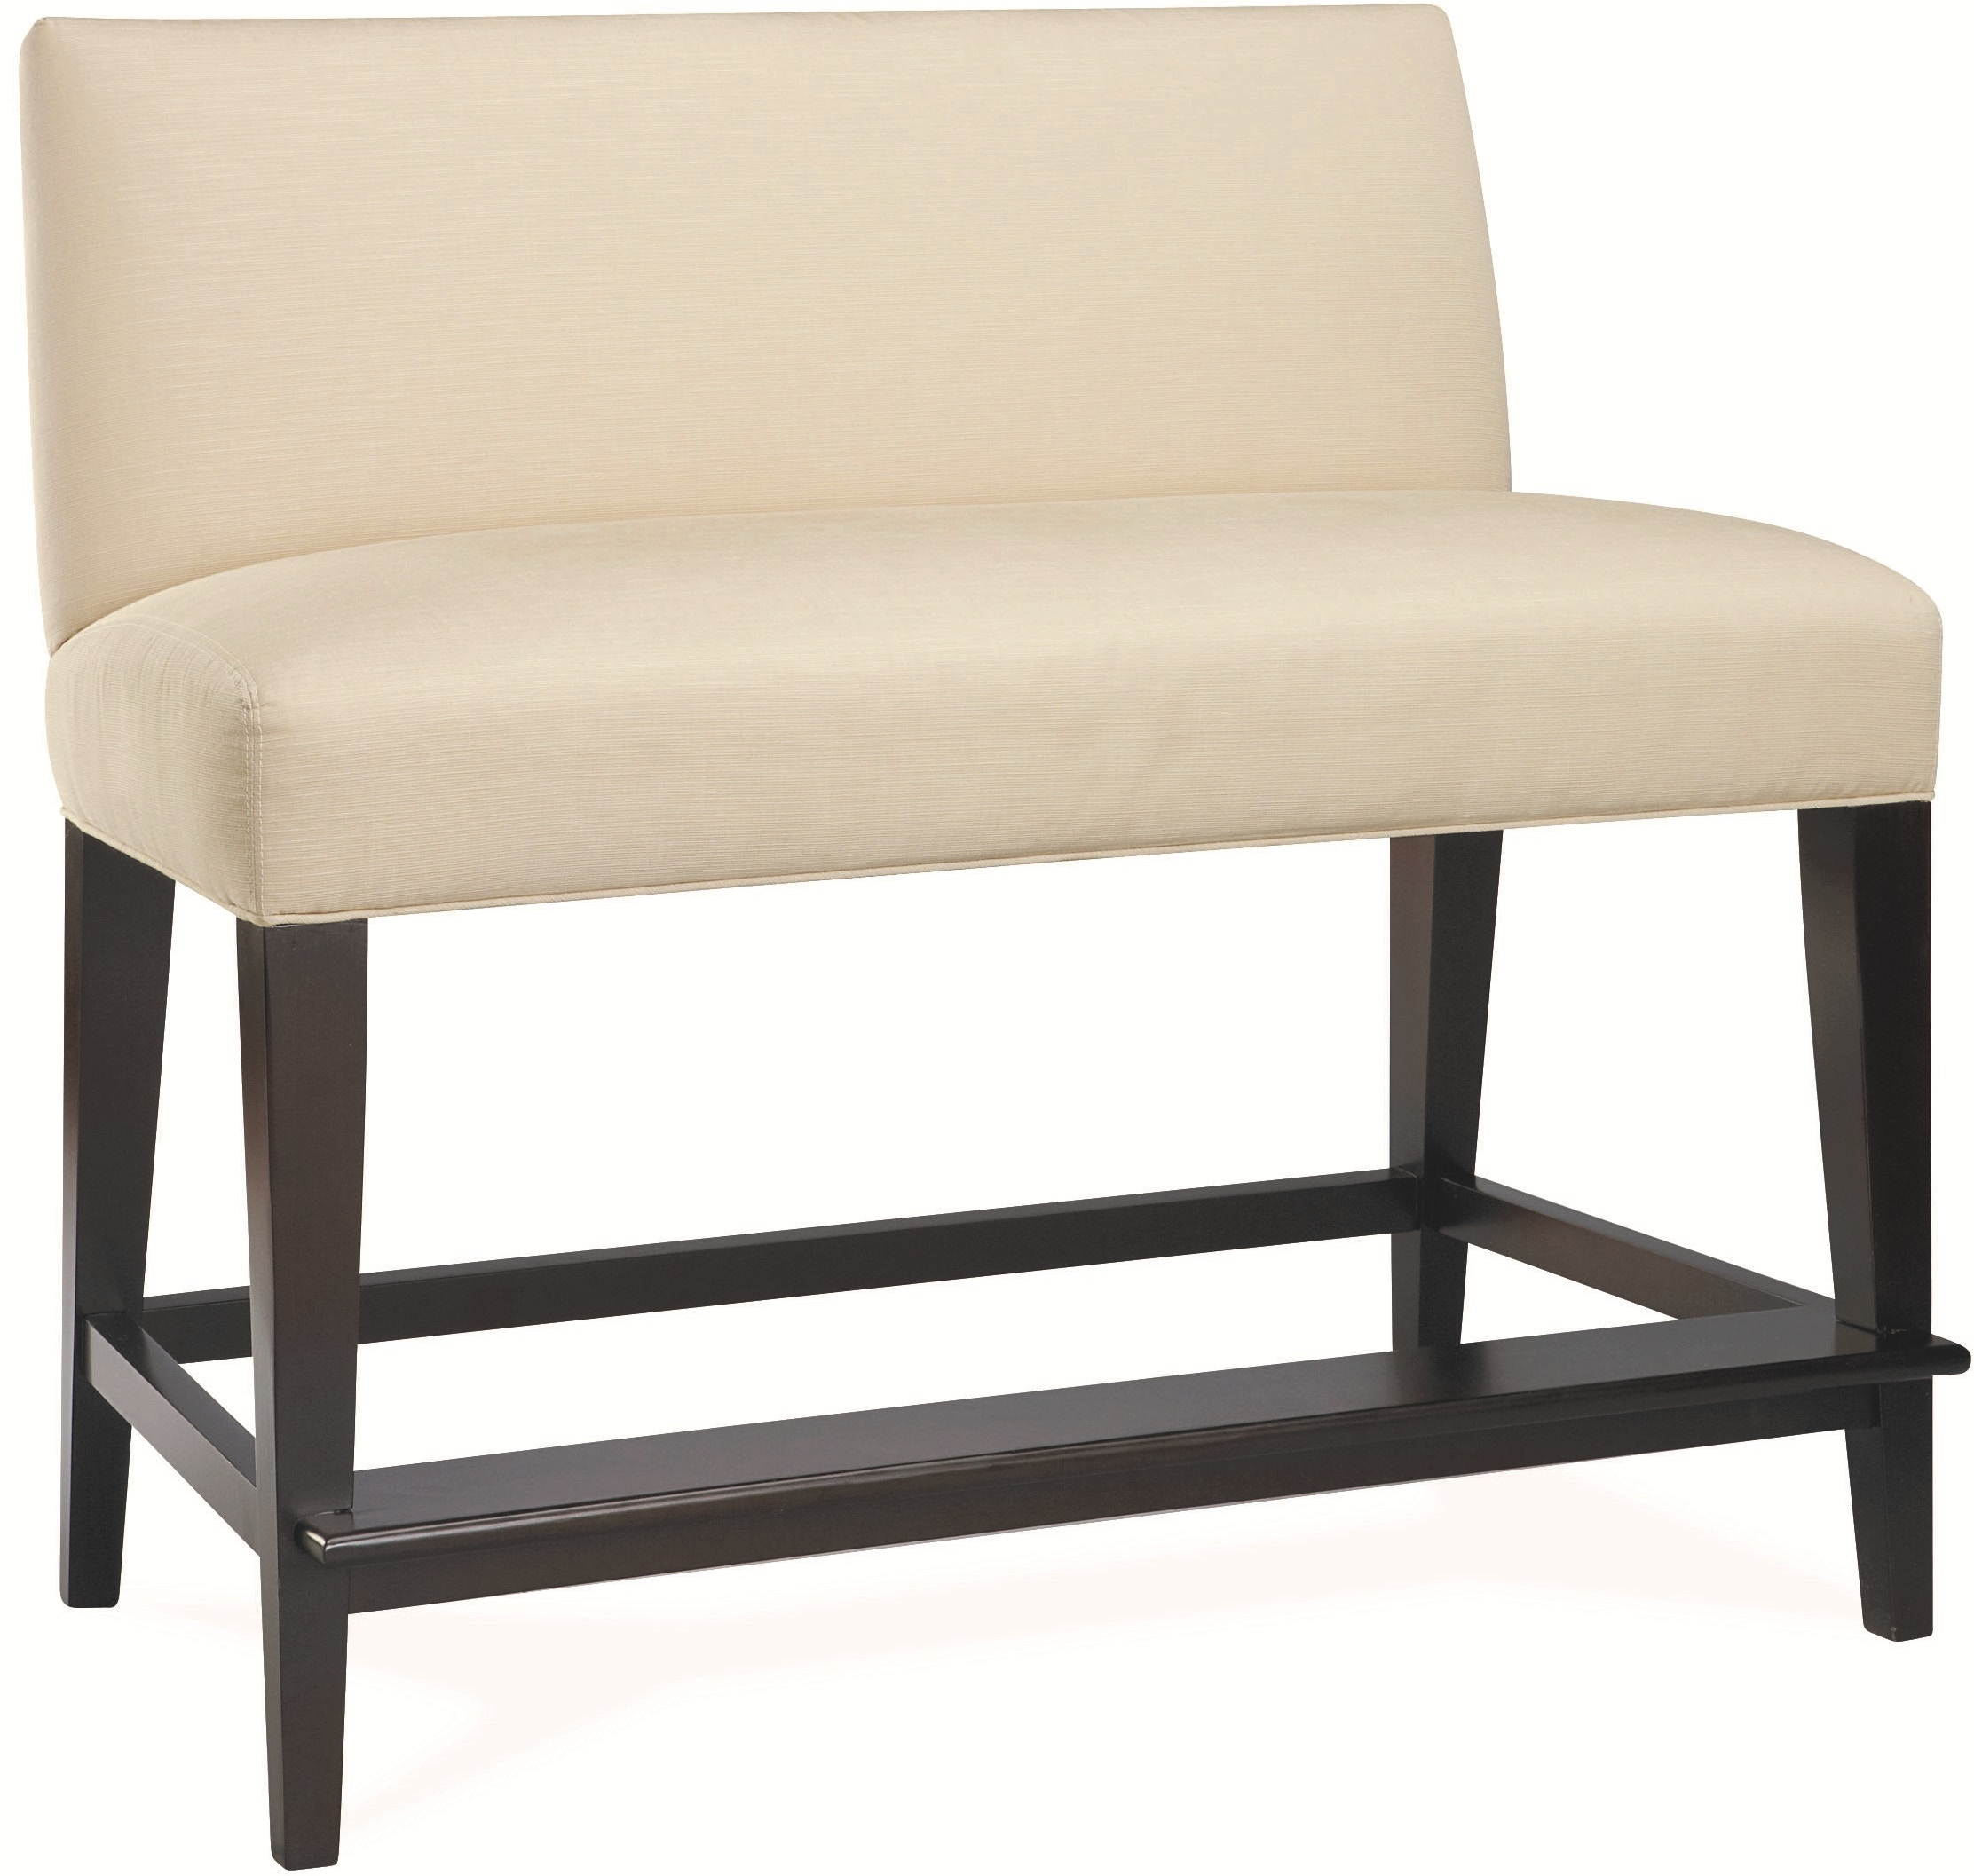 Lee Industries Dining Room Dual Seat Counter Bench 7000 53